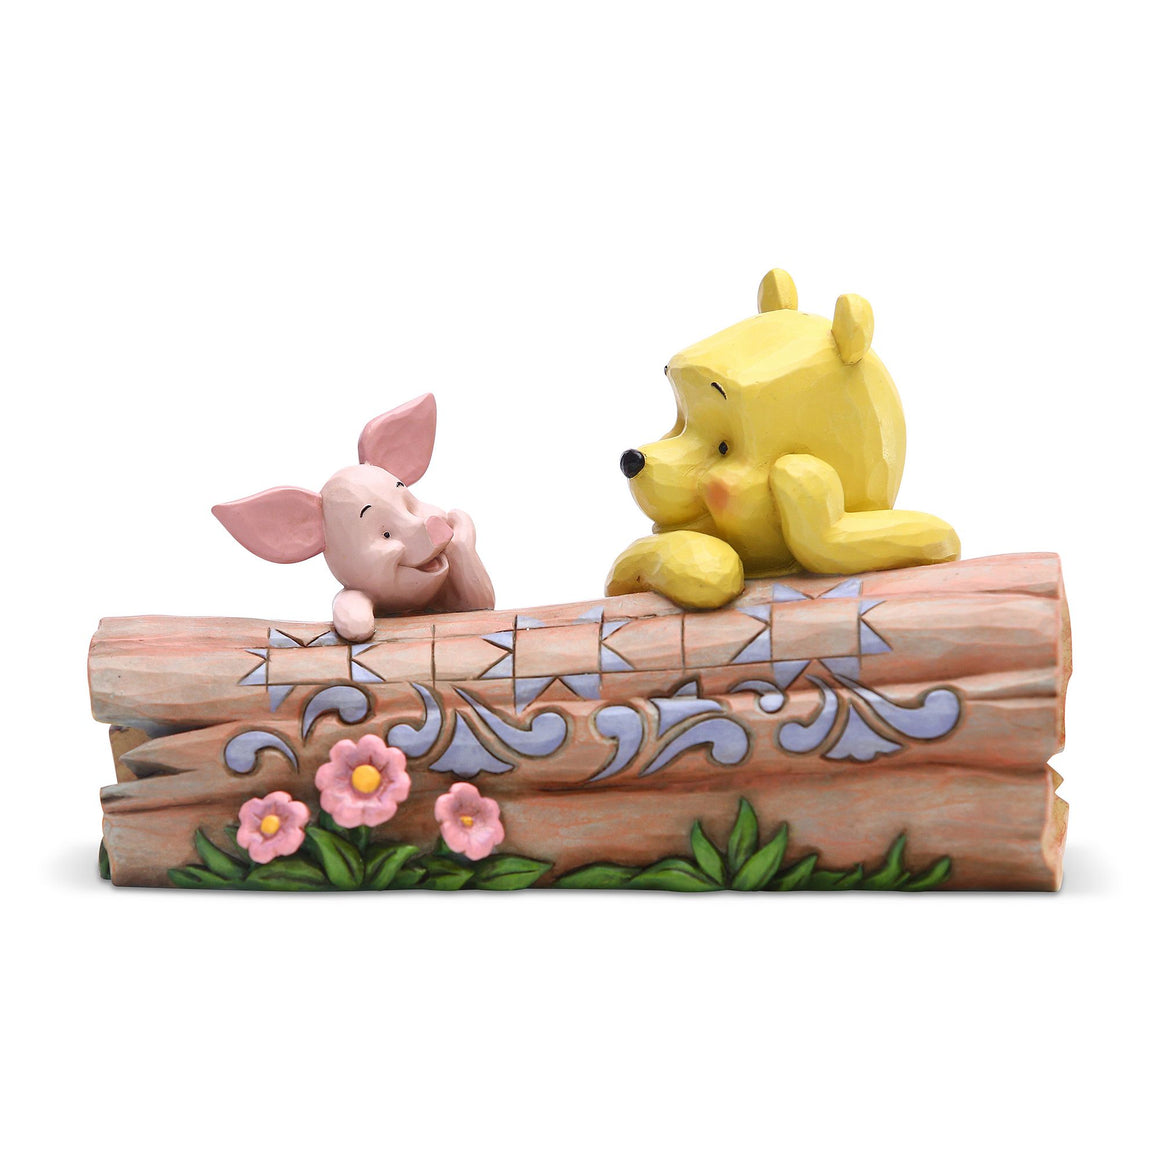 Truncated Conversation (Pooh and Piglet on a Log Figurine)